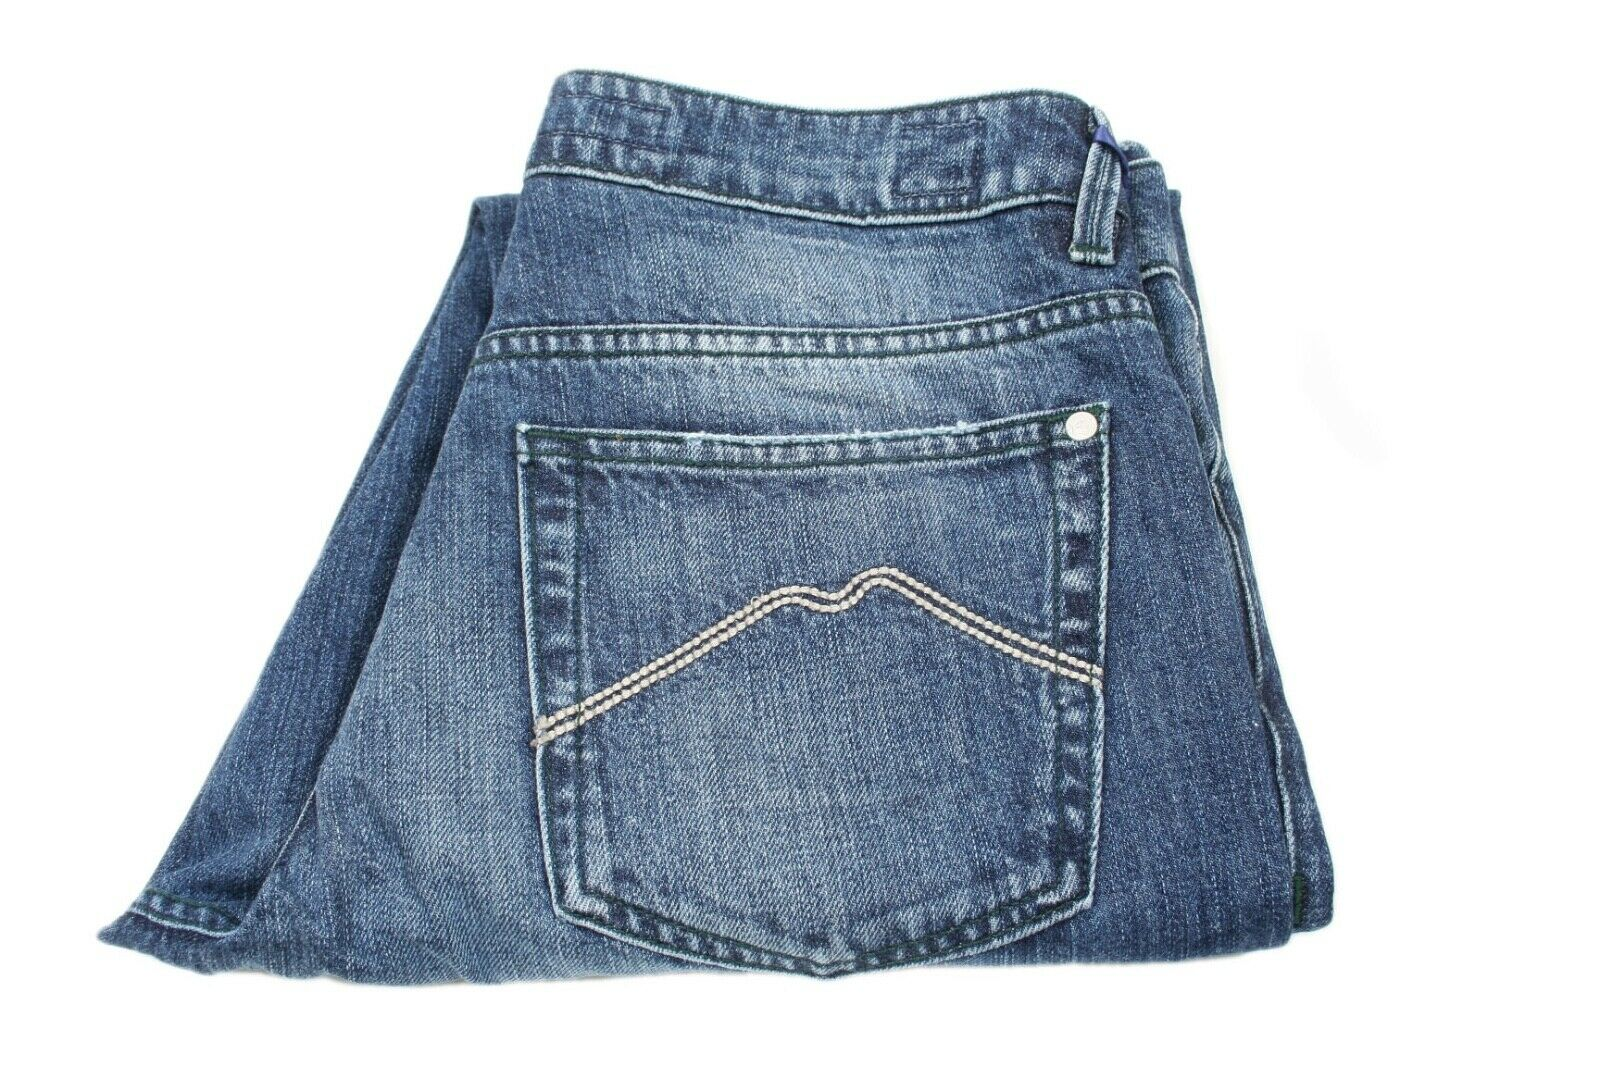 NWT E Marinella Lightly Whiskered Denim Jeans Size 31 (P6801)